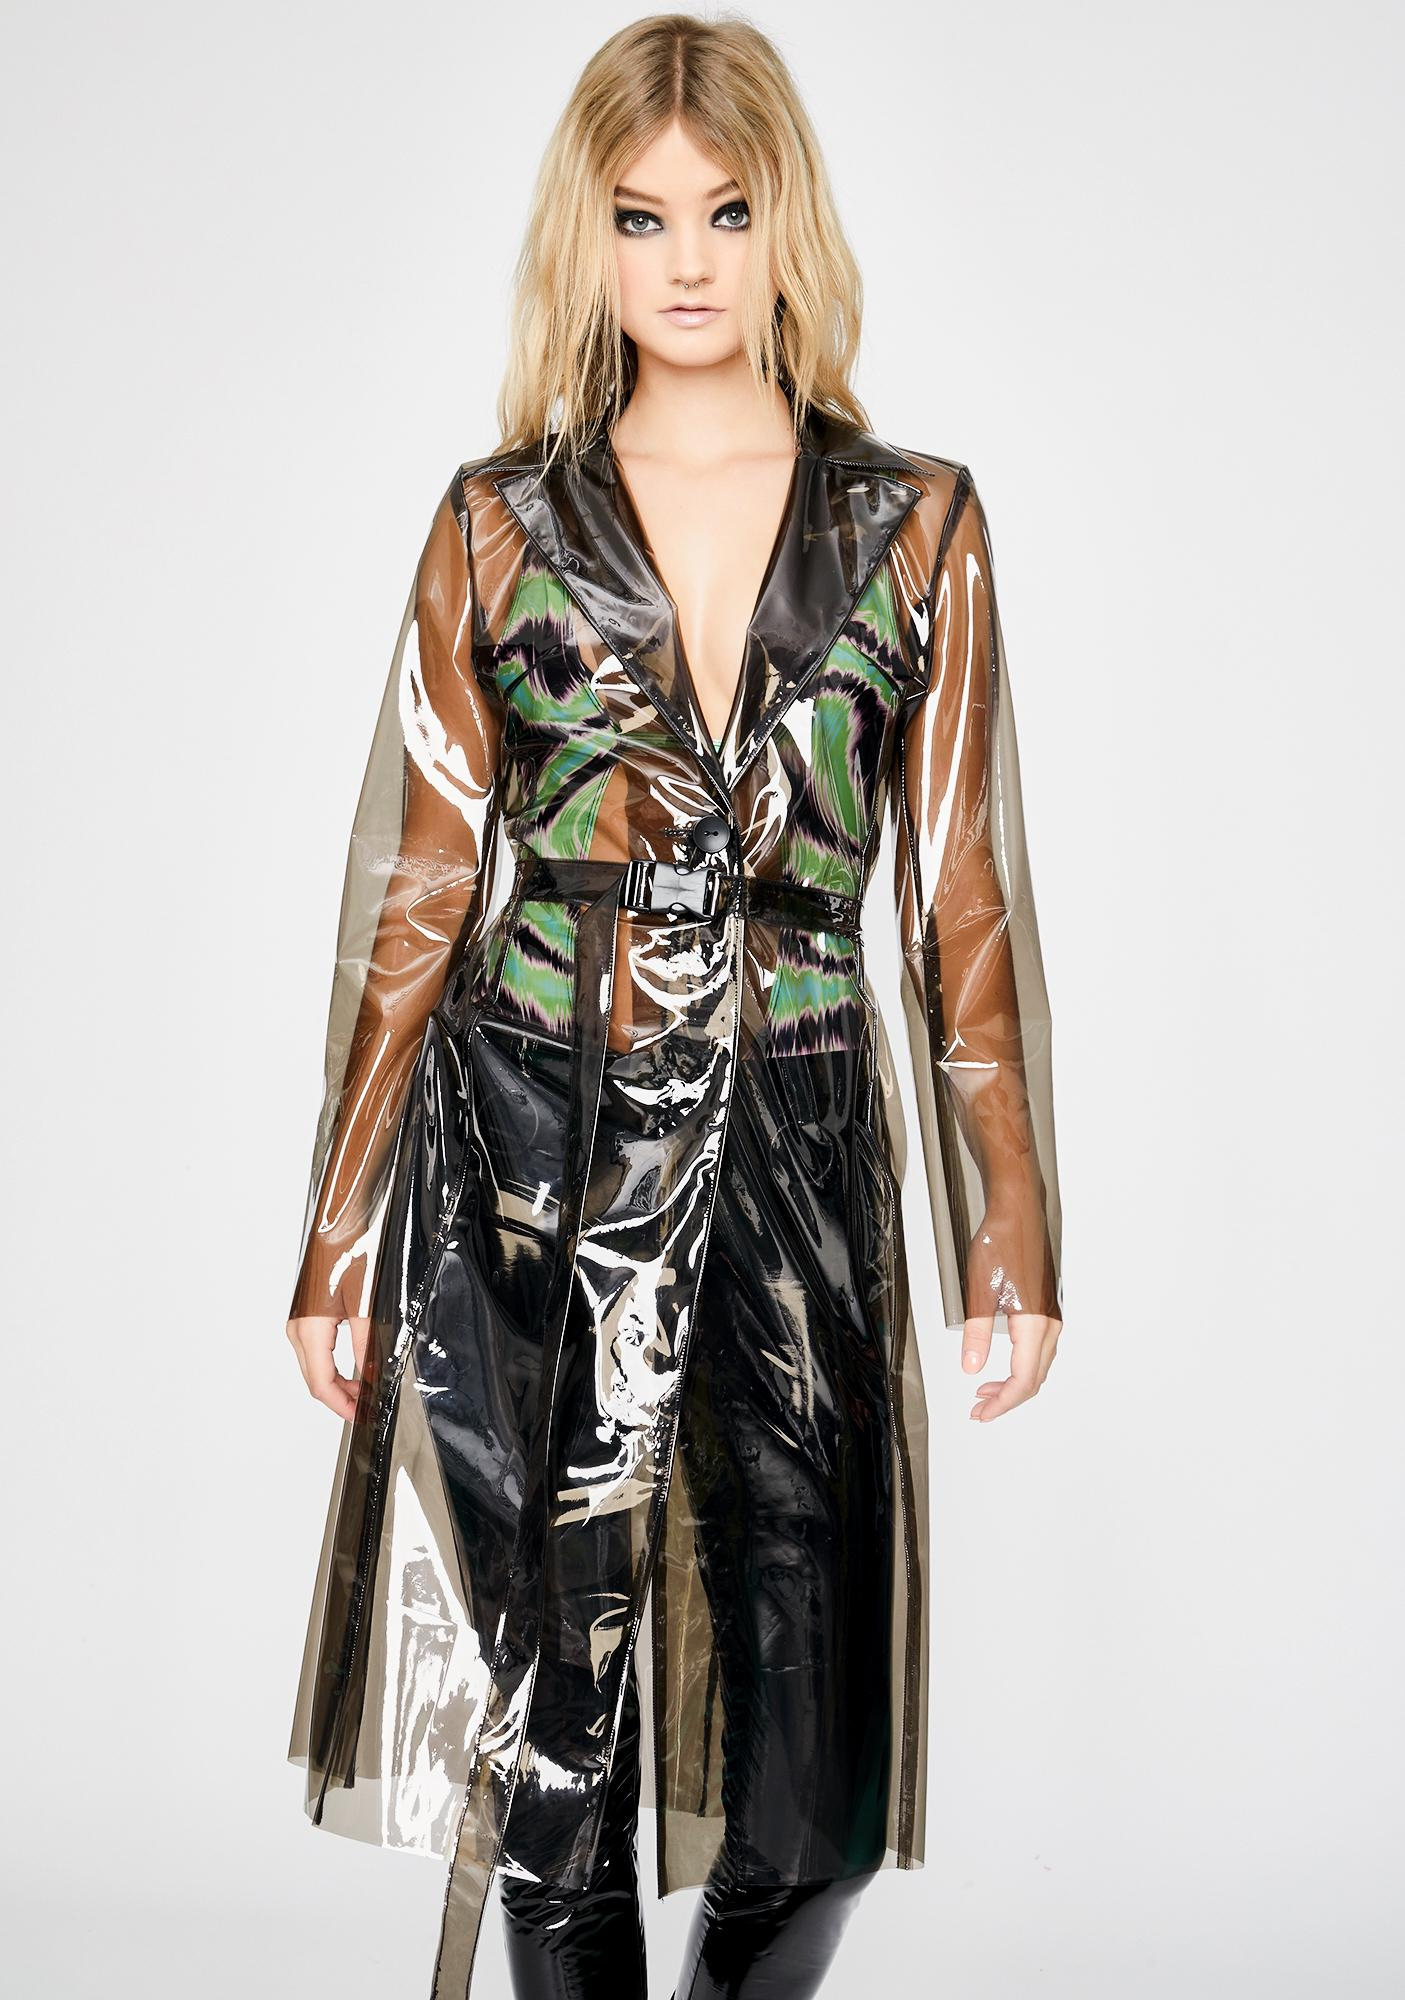 Ivy Berlin Barely There Vinyl Trench Coat